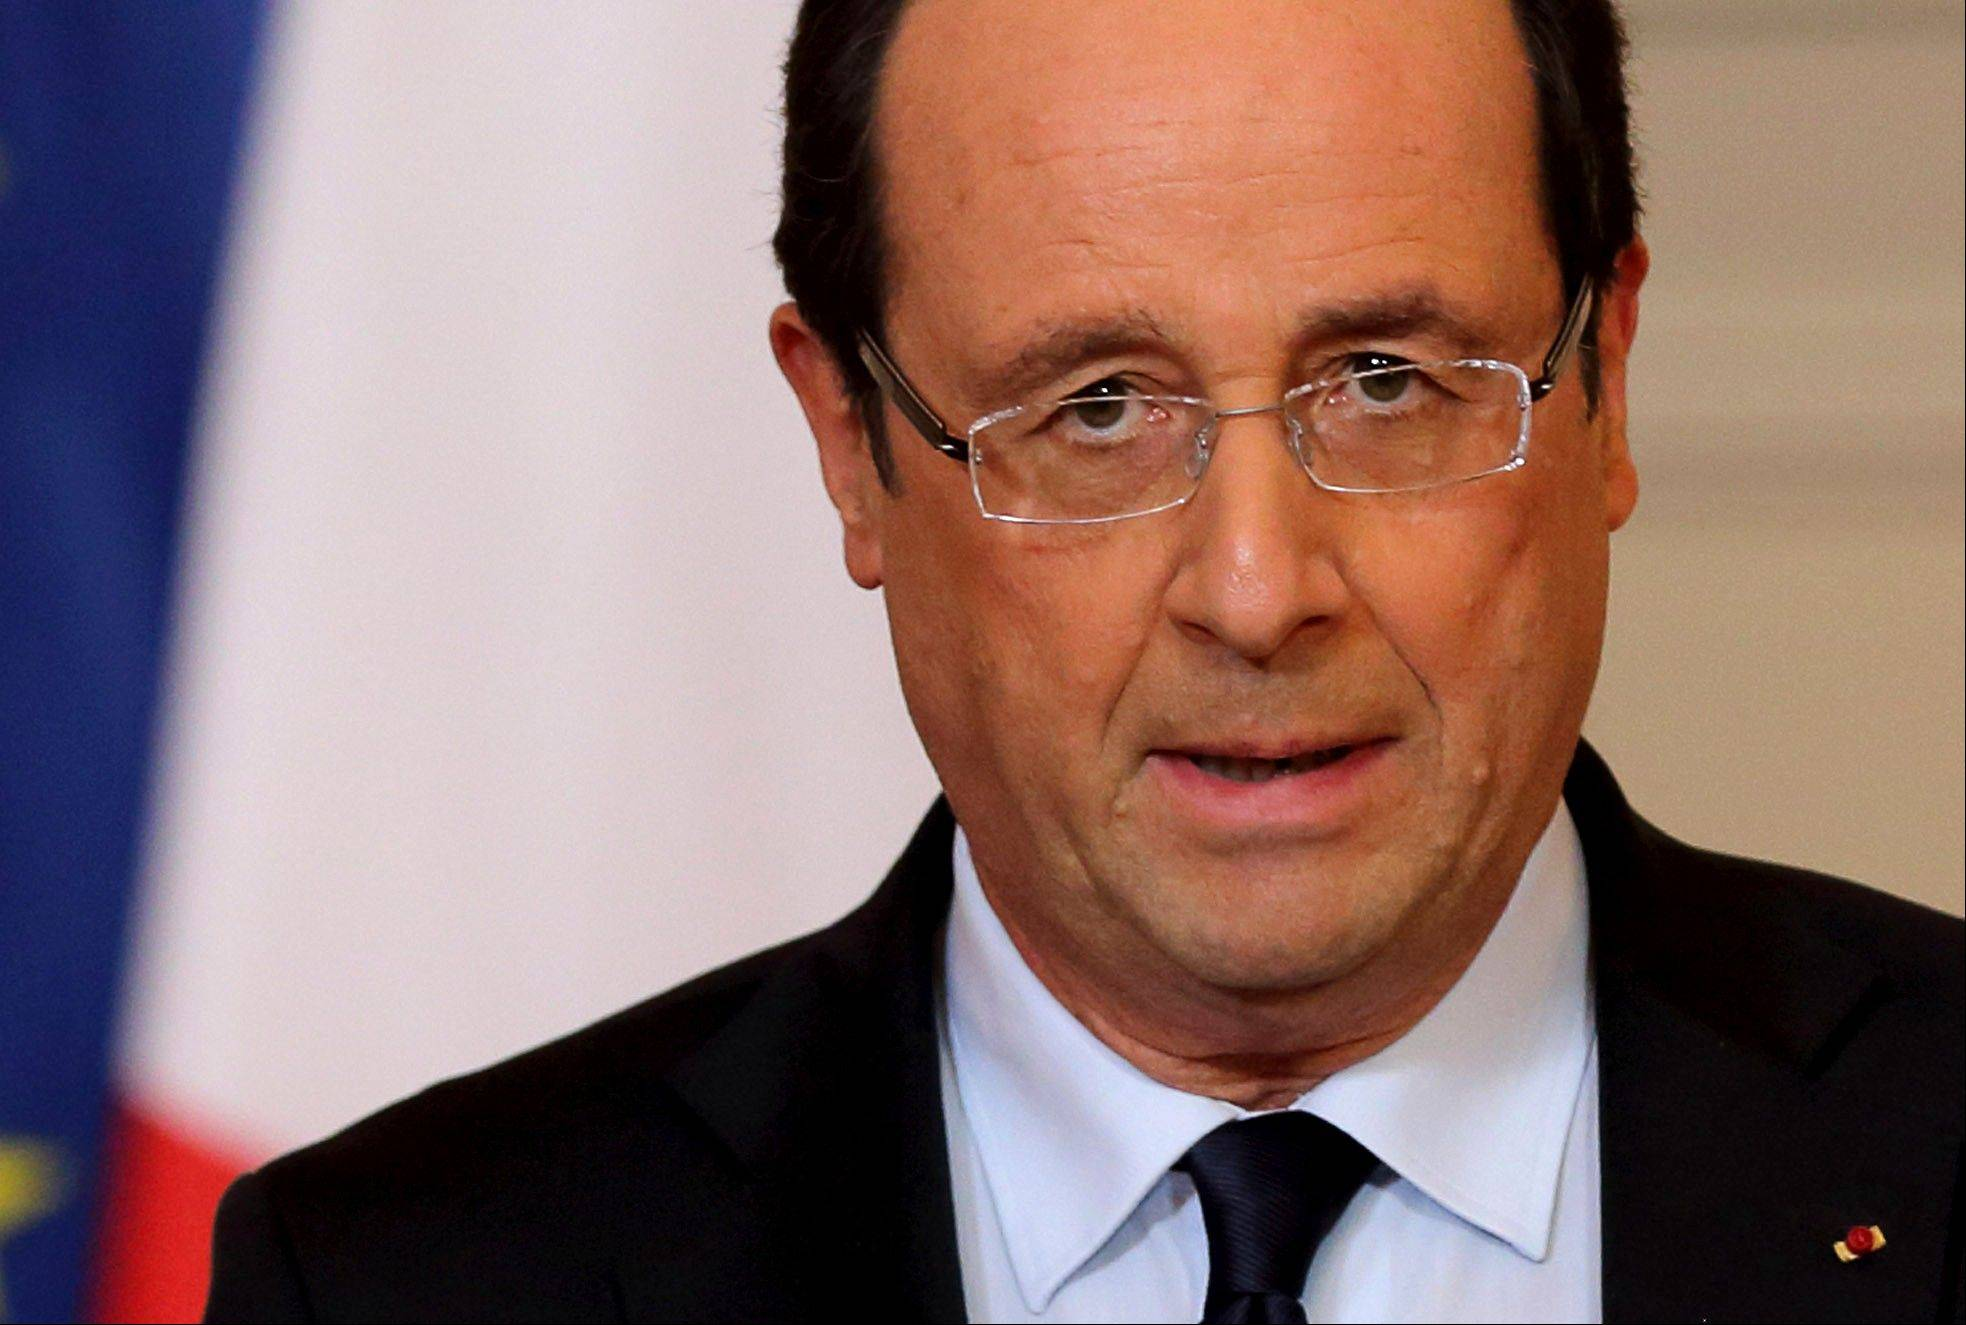 France's President Francois Hollande delivers a speech Friday on the situation in Mali at the Elysee Palace in Paris.